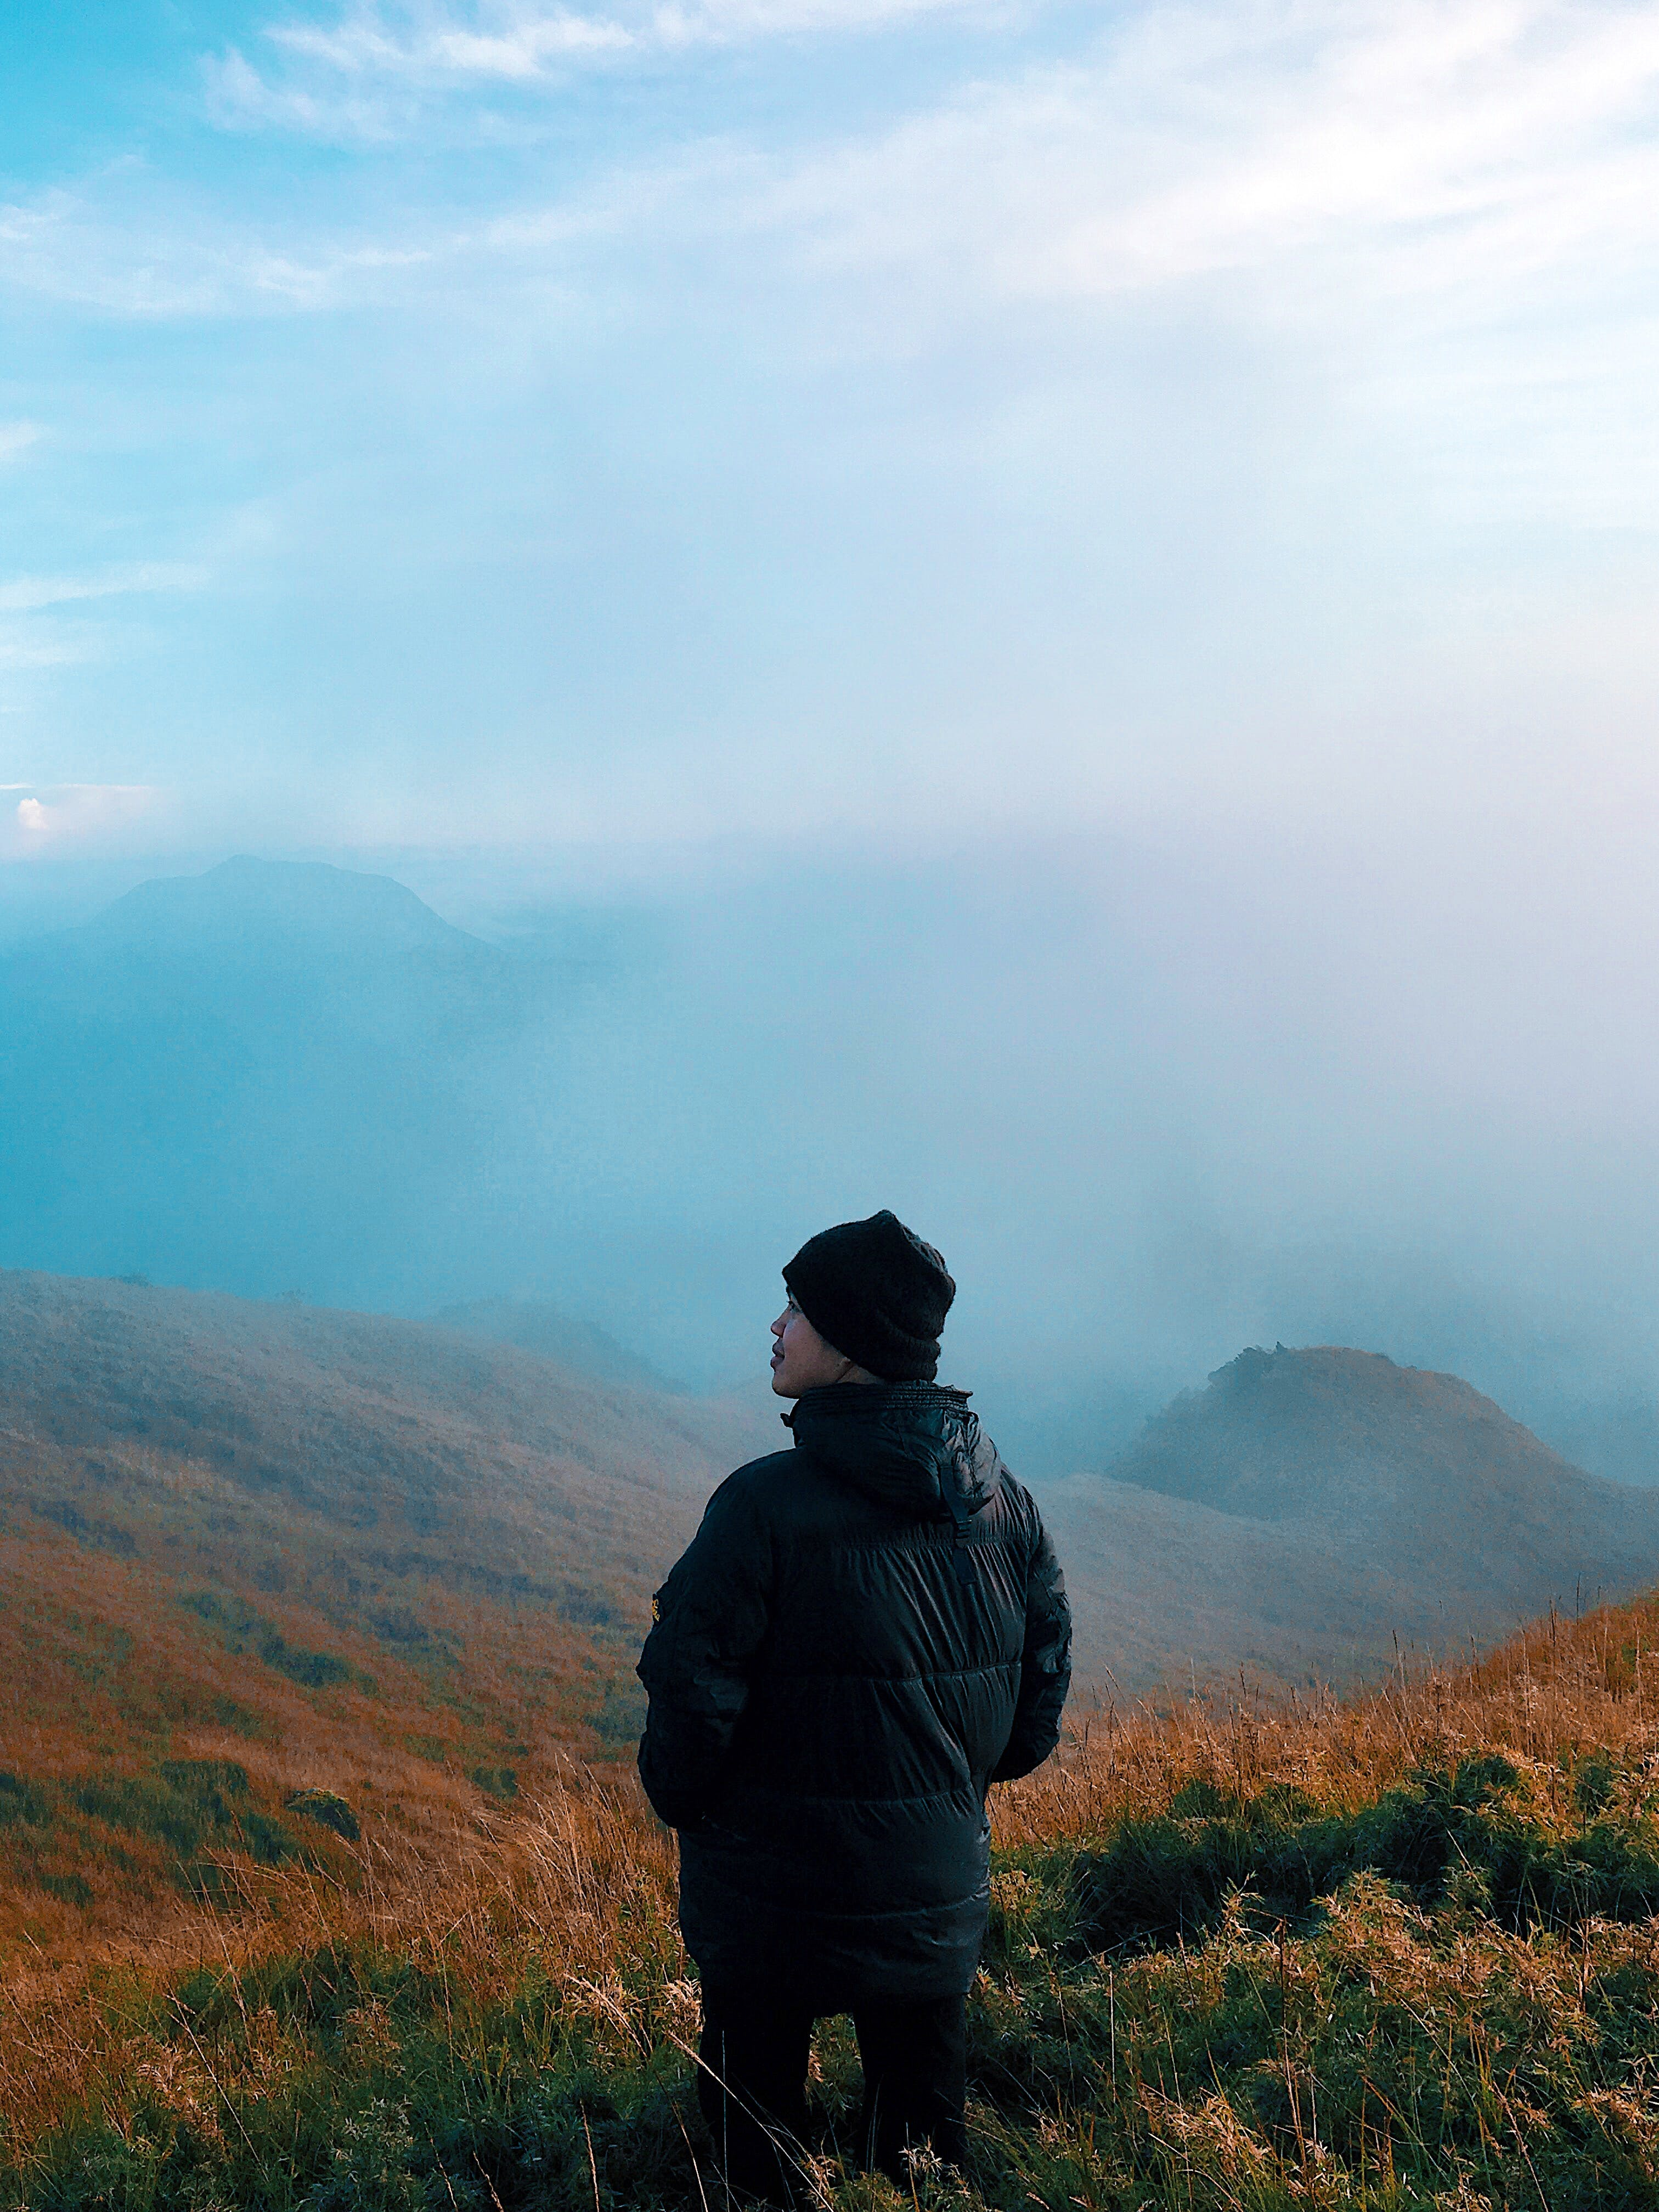 Man in Black Jacket Standing on Mountain With Fog